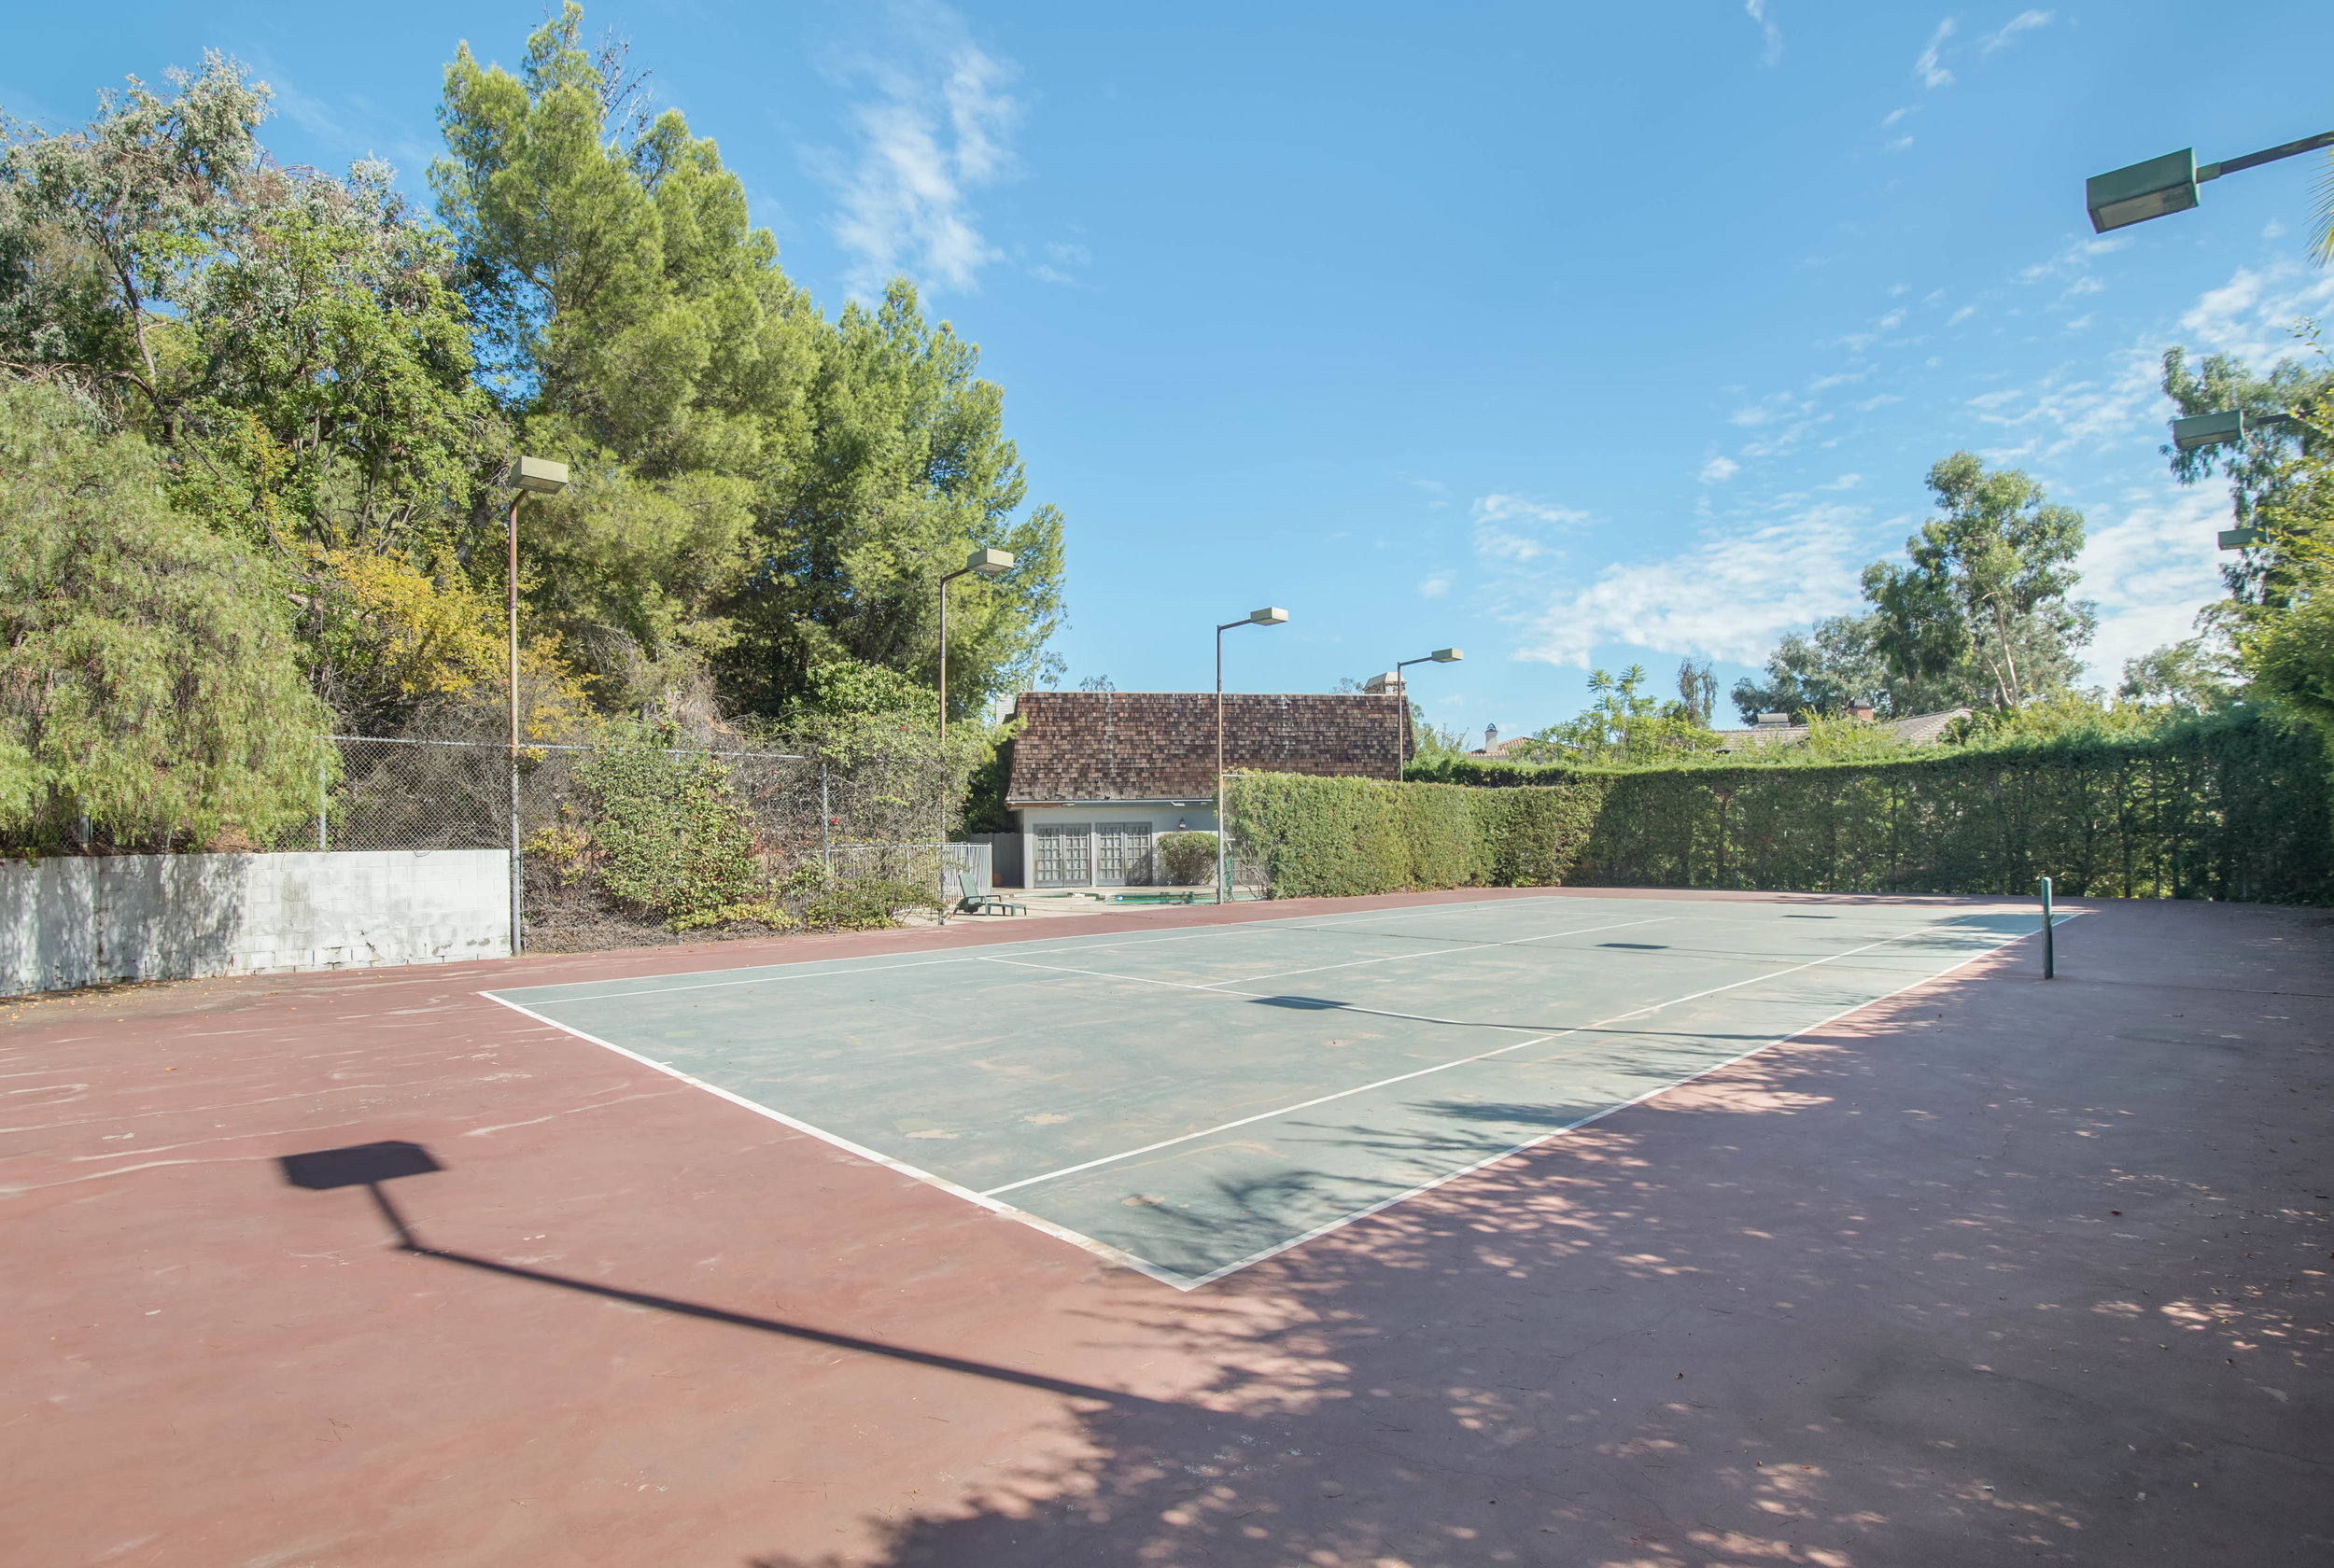 006 Tennis Court 3191 Toppington Drive Beverly Hills For Sale Lease The Malibu Life Team Luxury Real Estate.jpg